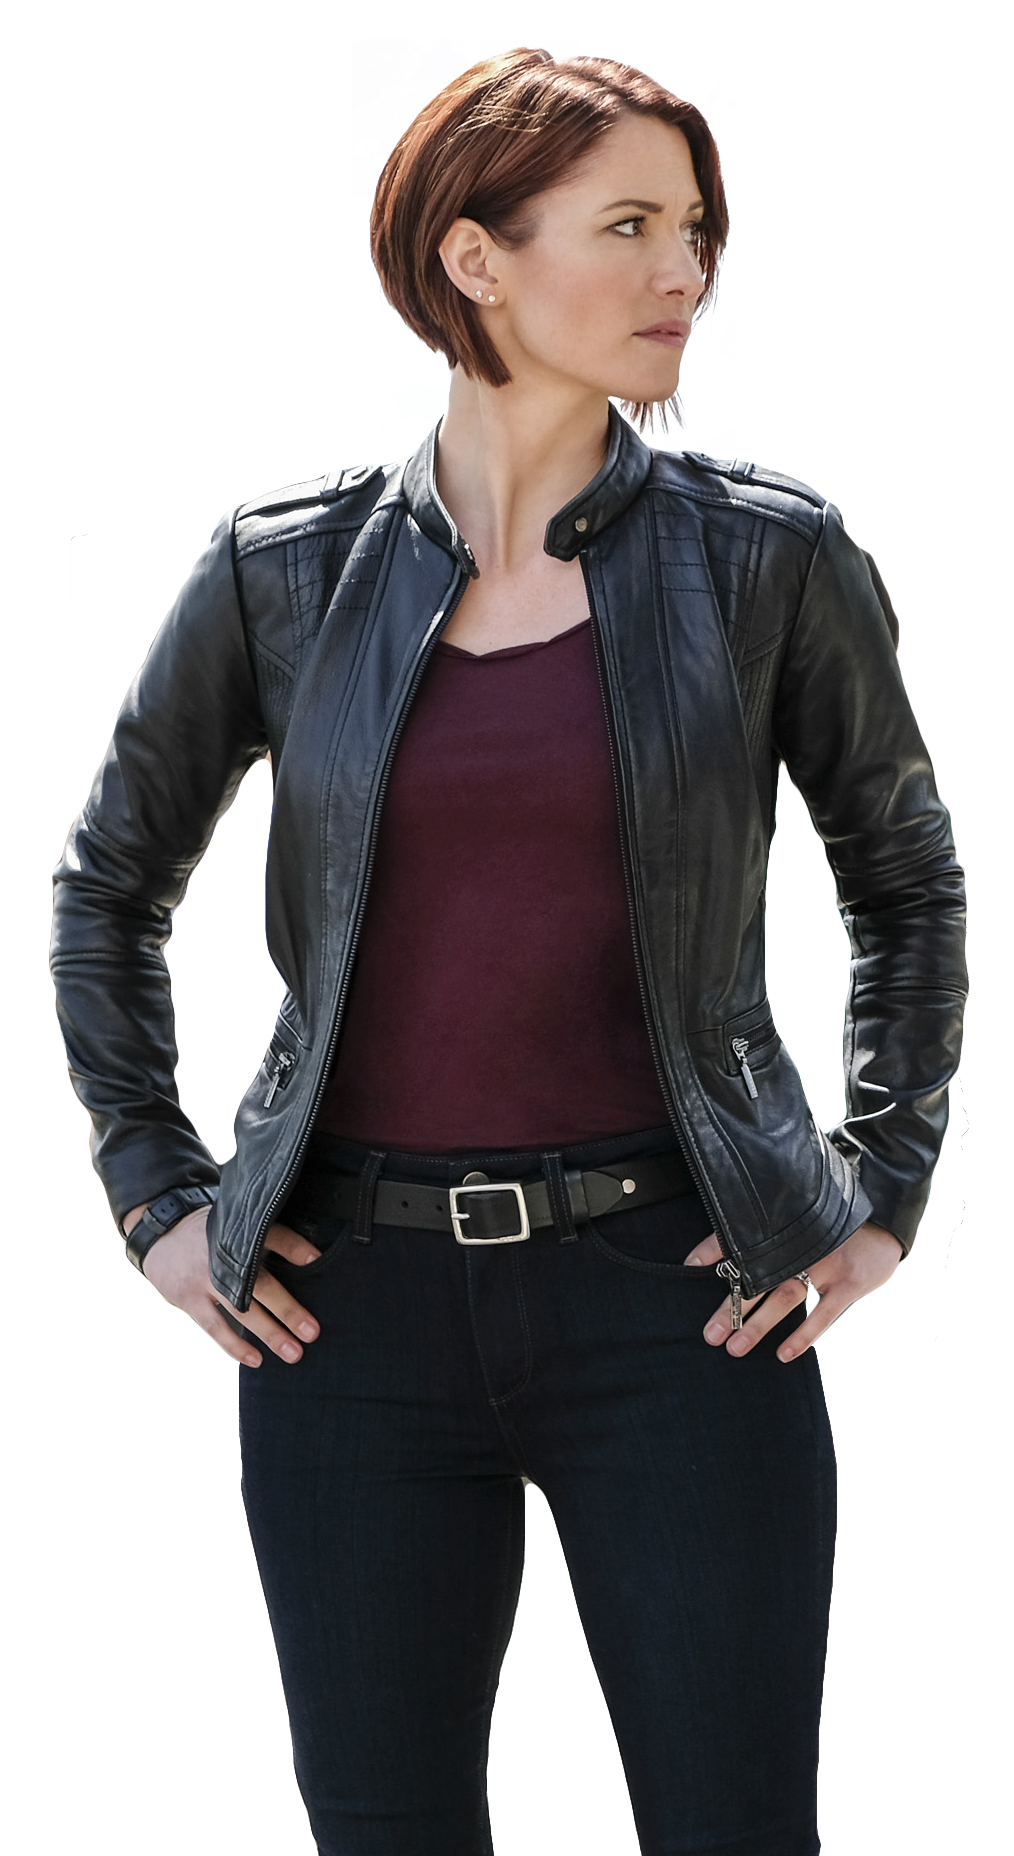 Supergirl transparent brown hair. Chyler leigh en alex